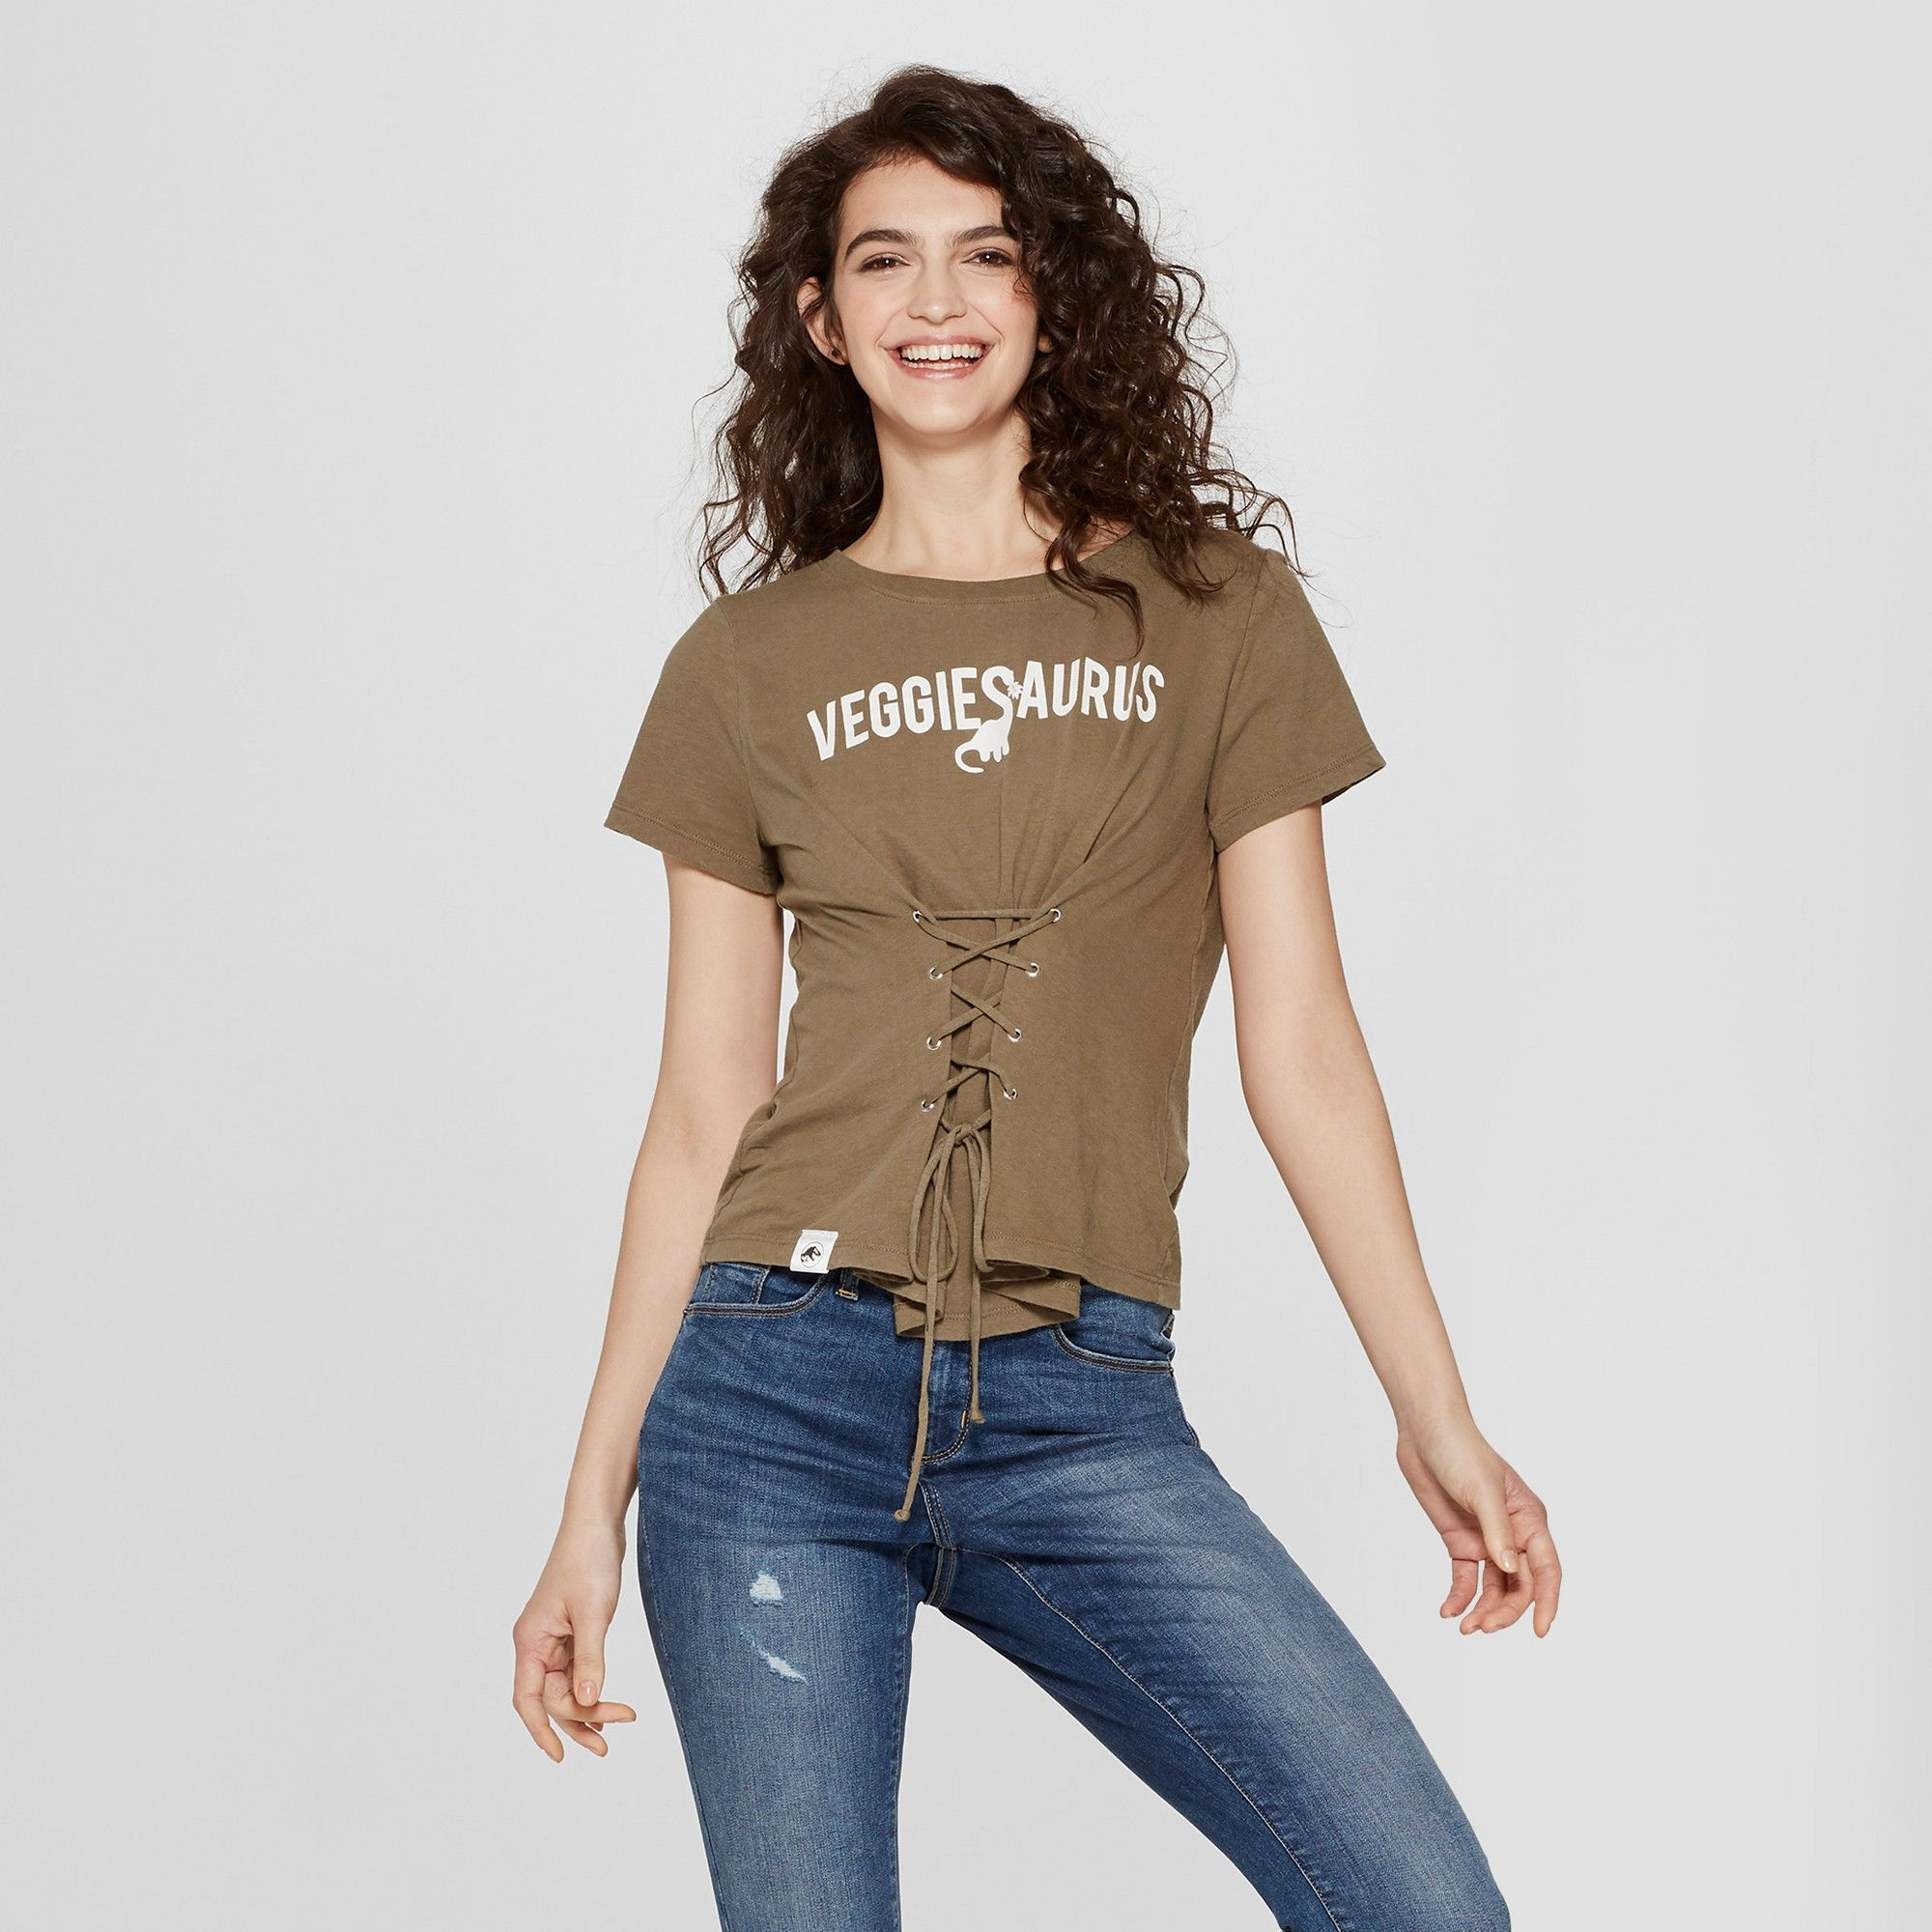 Women s Jurassic Park Vegansaurus Short Sleeve Tie Font Lace-Up Graphic  T-Shirt (Juniors ) Olive Green M a056447ba